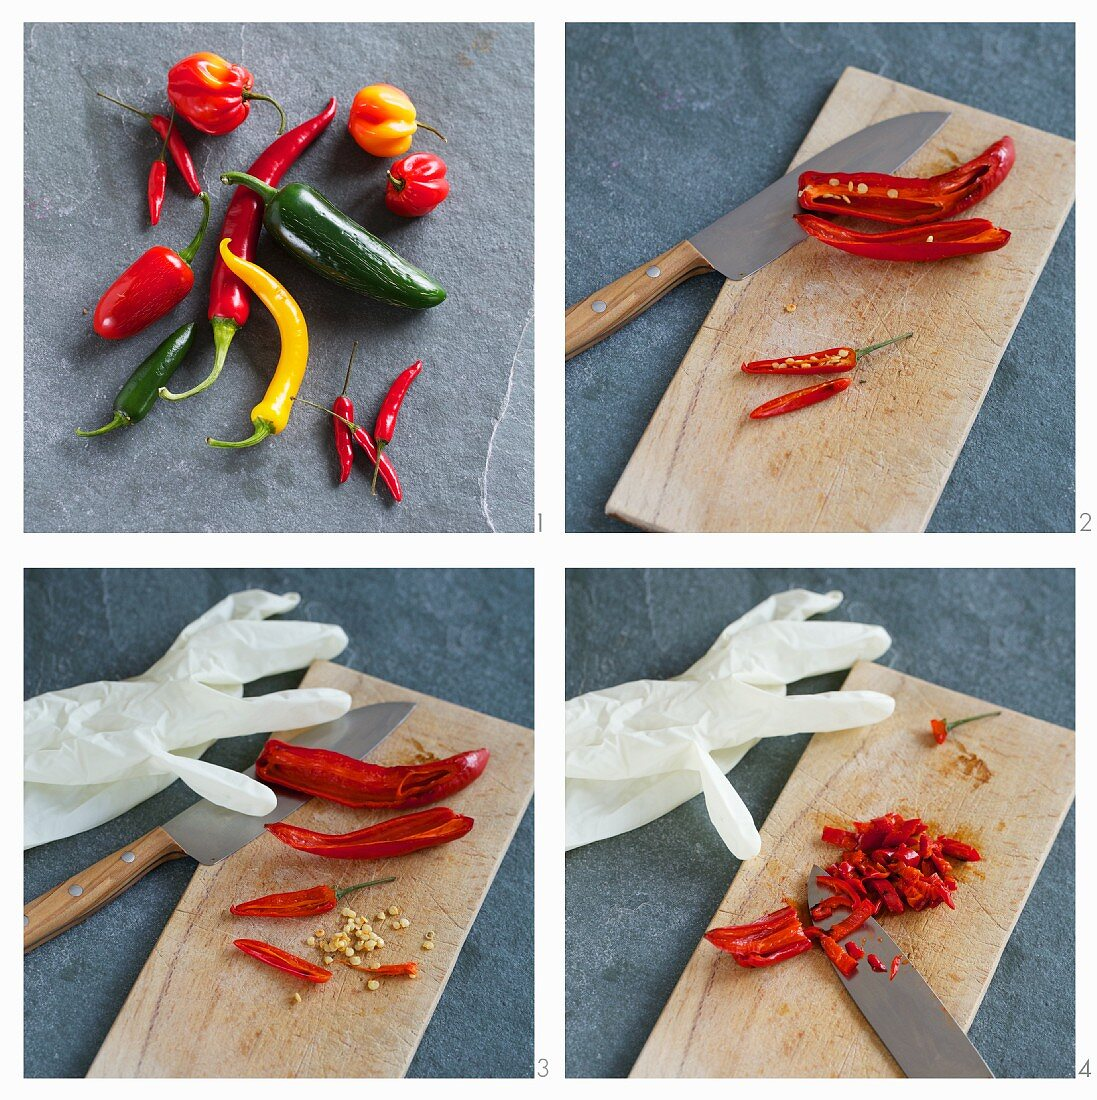 Finely sliced chillies, including jalapeño and habañero chillies